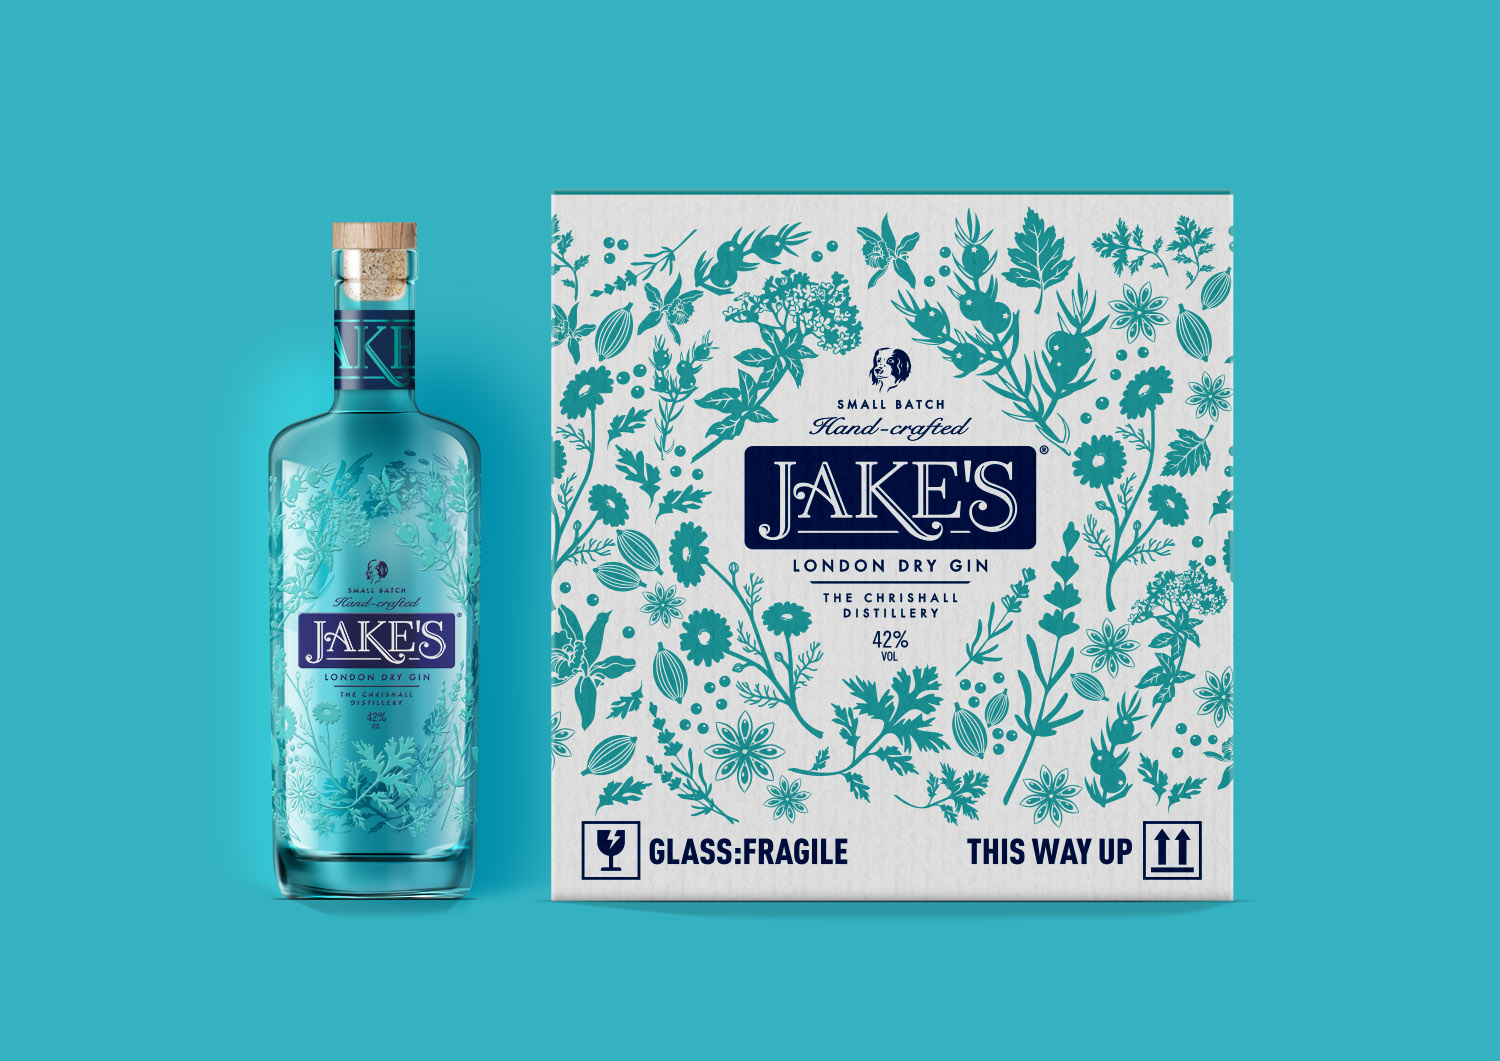 jakes-gin-bottle-outer-case-design